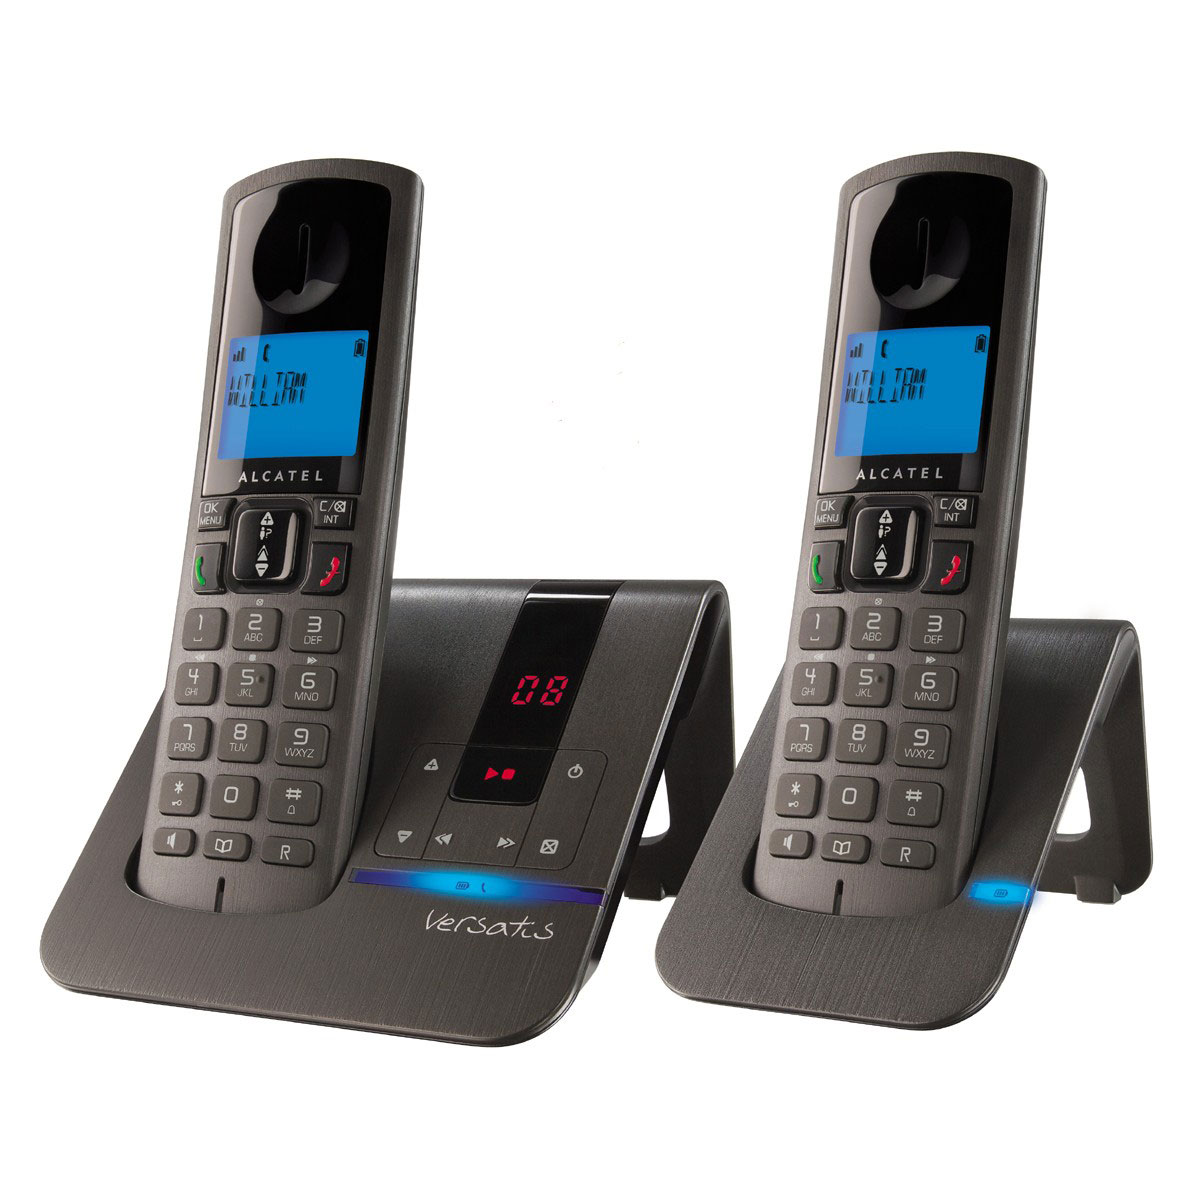 alcatel versatis f250 voice duo noir t l phone sans fil alcatel sur ldlc. Black Bedroom Furniture Sets. Home Design Ideas